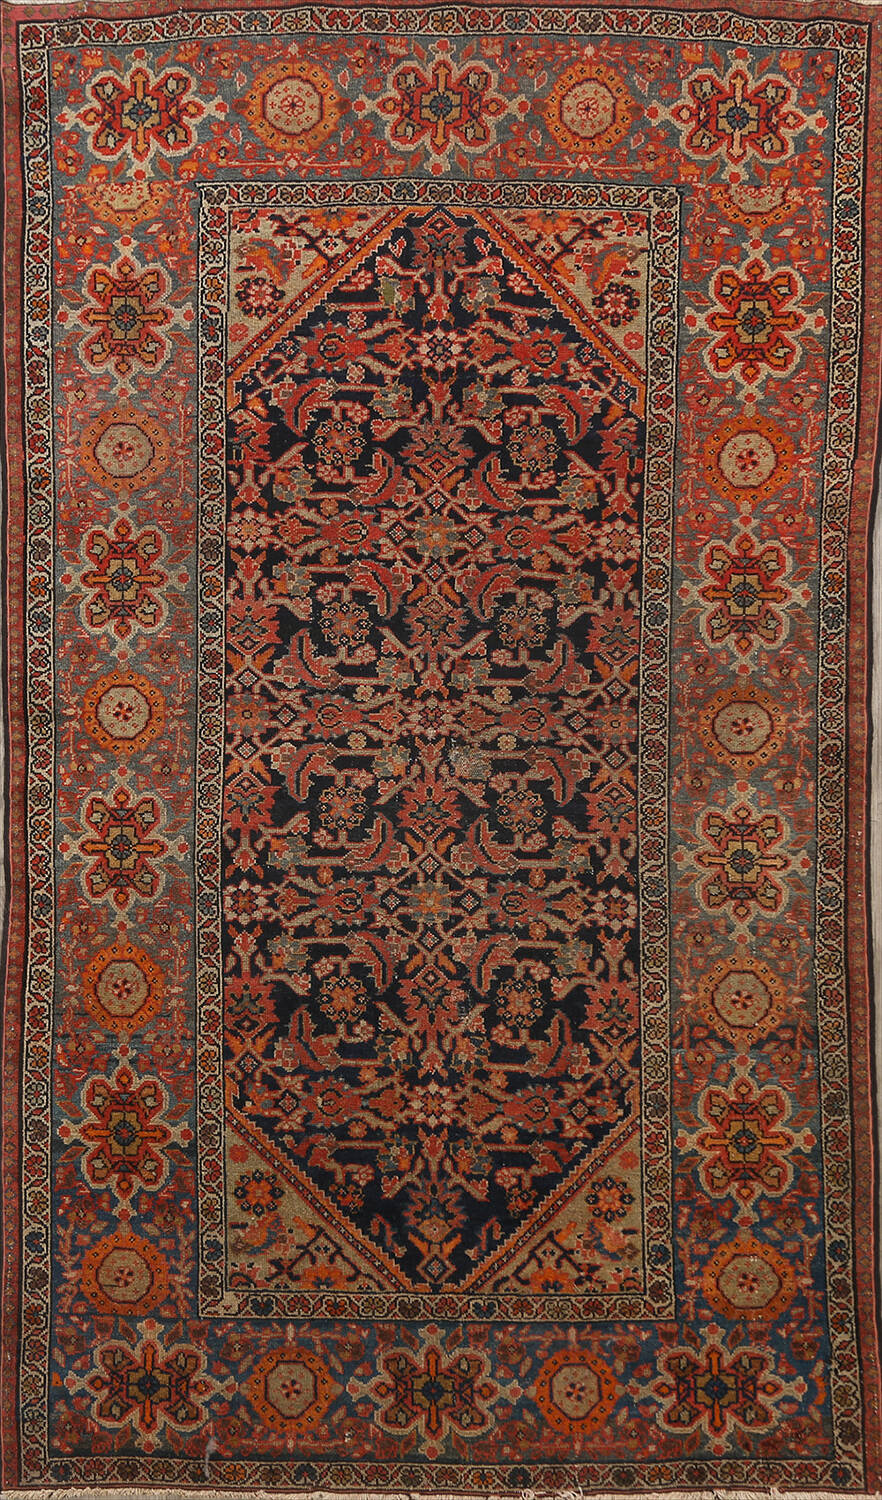 Pre-1900 Antique Vegetable Dye Malayer Persian Area Rug 4x6 image 1